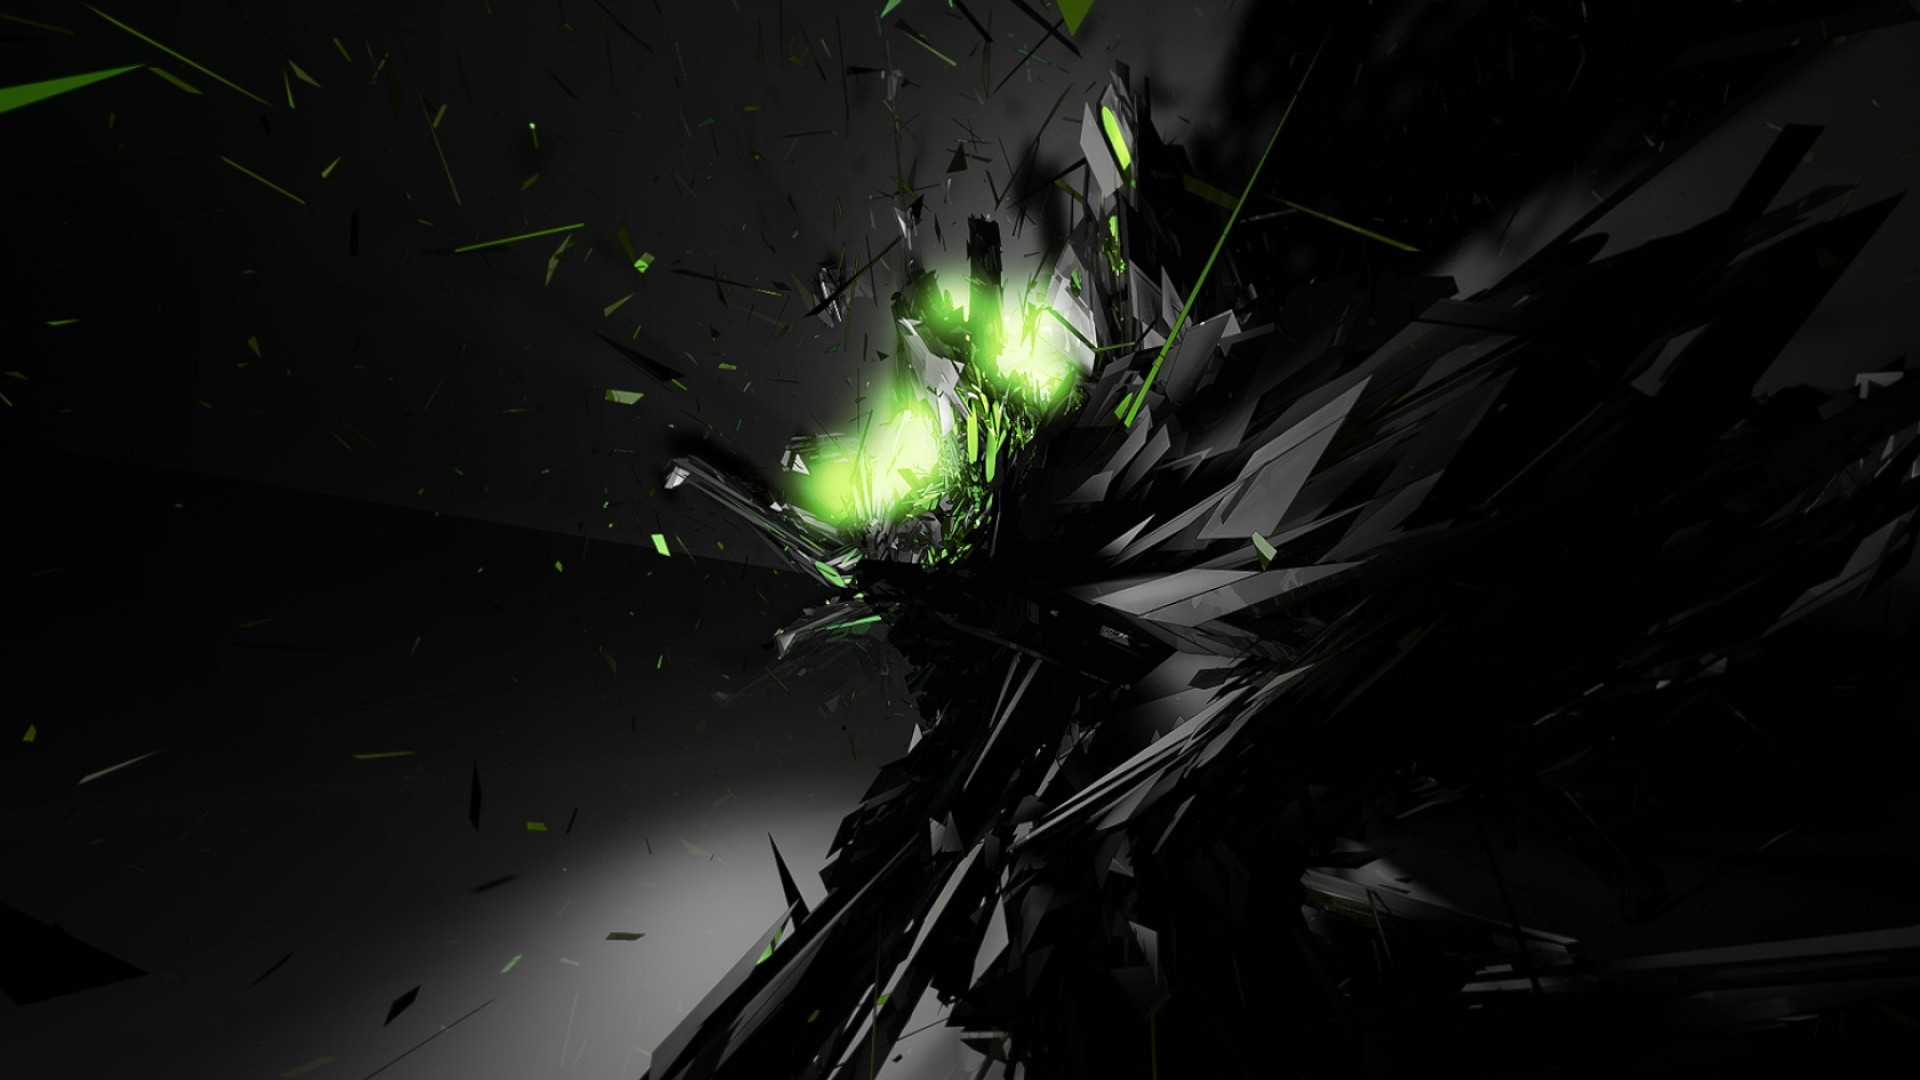 1920x1080 Dark Explode Abstract With Black And Neon Wallpaper